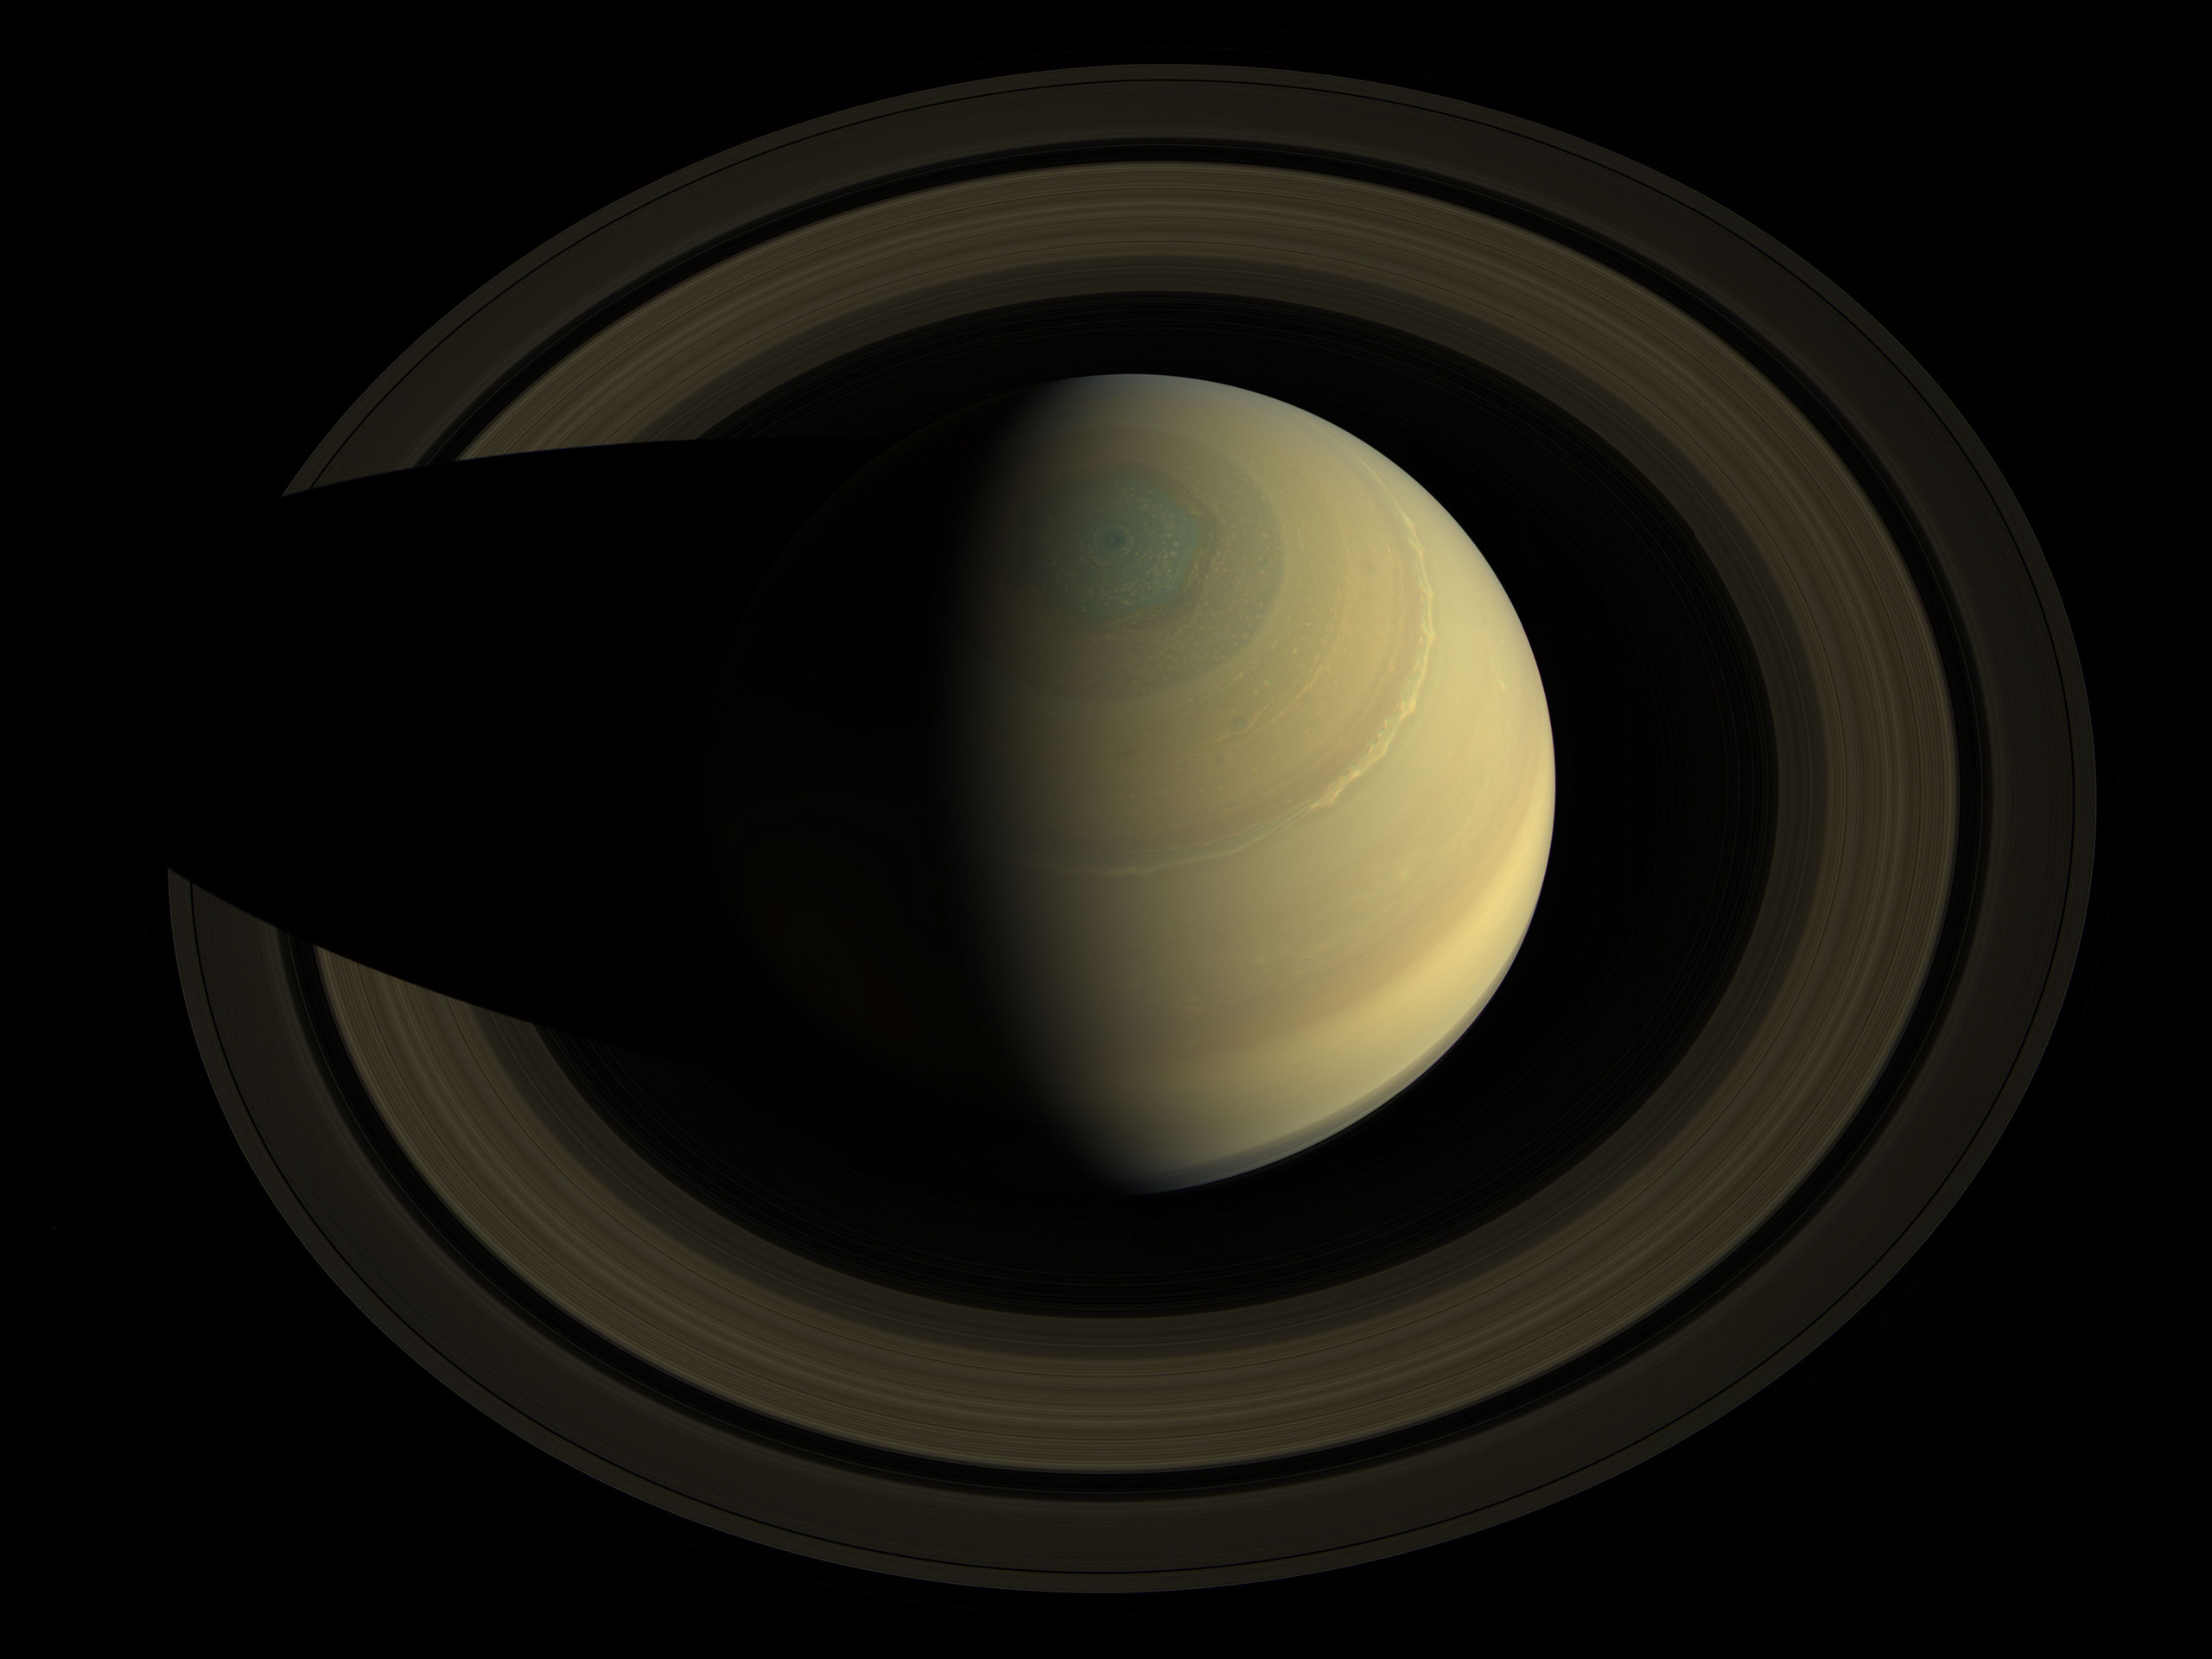 A swing high above Saturn by NASA's Cassini spacecraft revealed this stately view of the golden-hued planet and its main rings on Oct. 10, 2013.